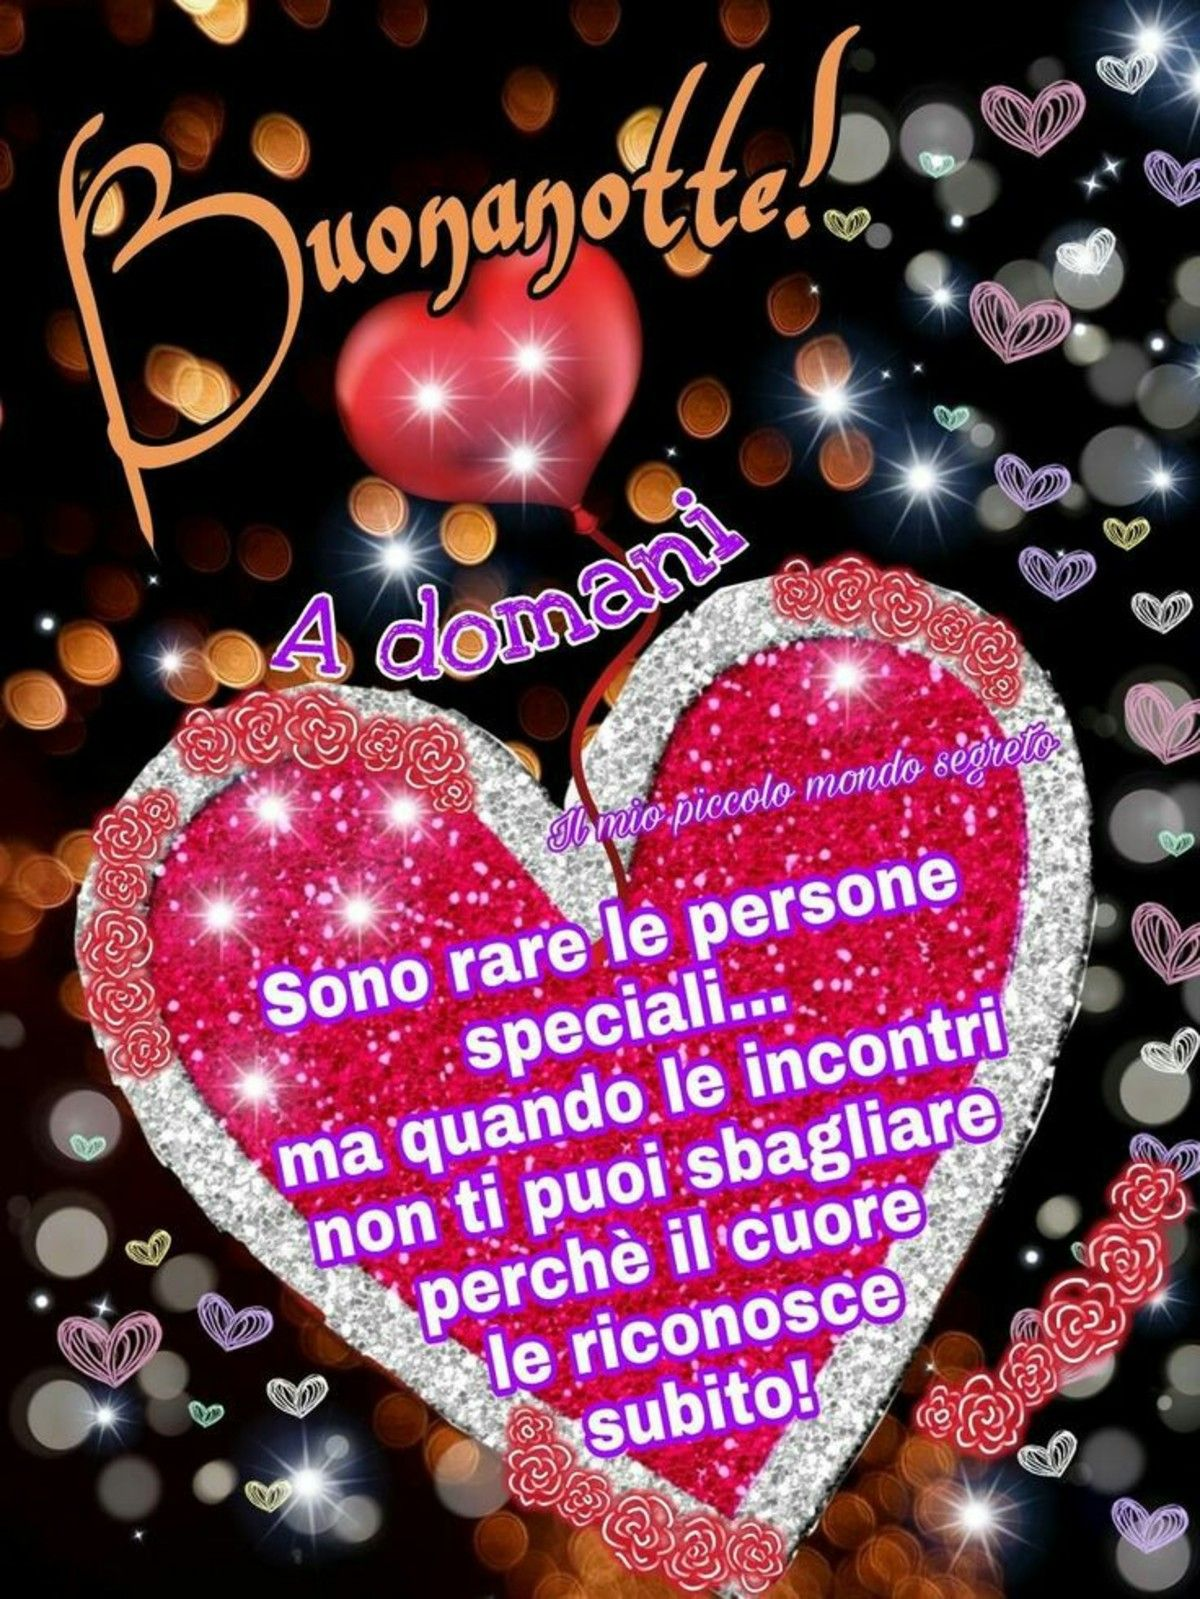 Whatsapp Frasi Buonanotte Amici Miei 7289 With Images Good